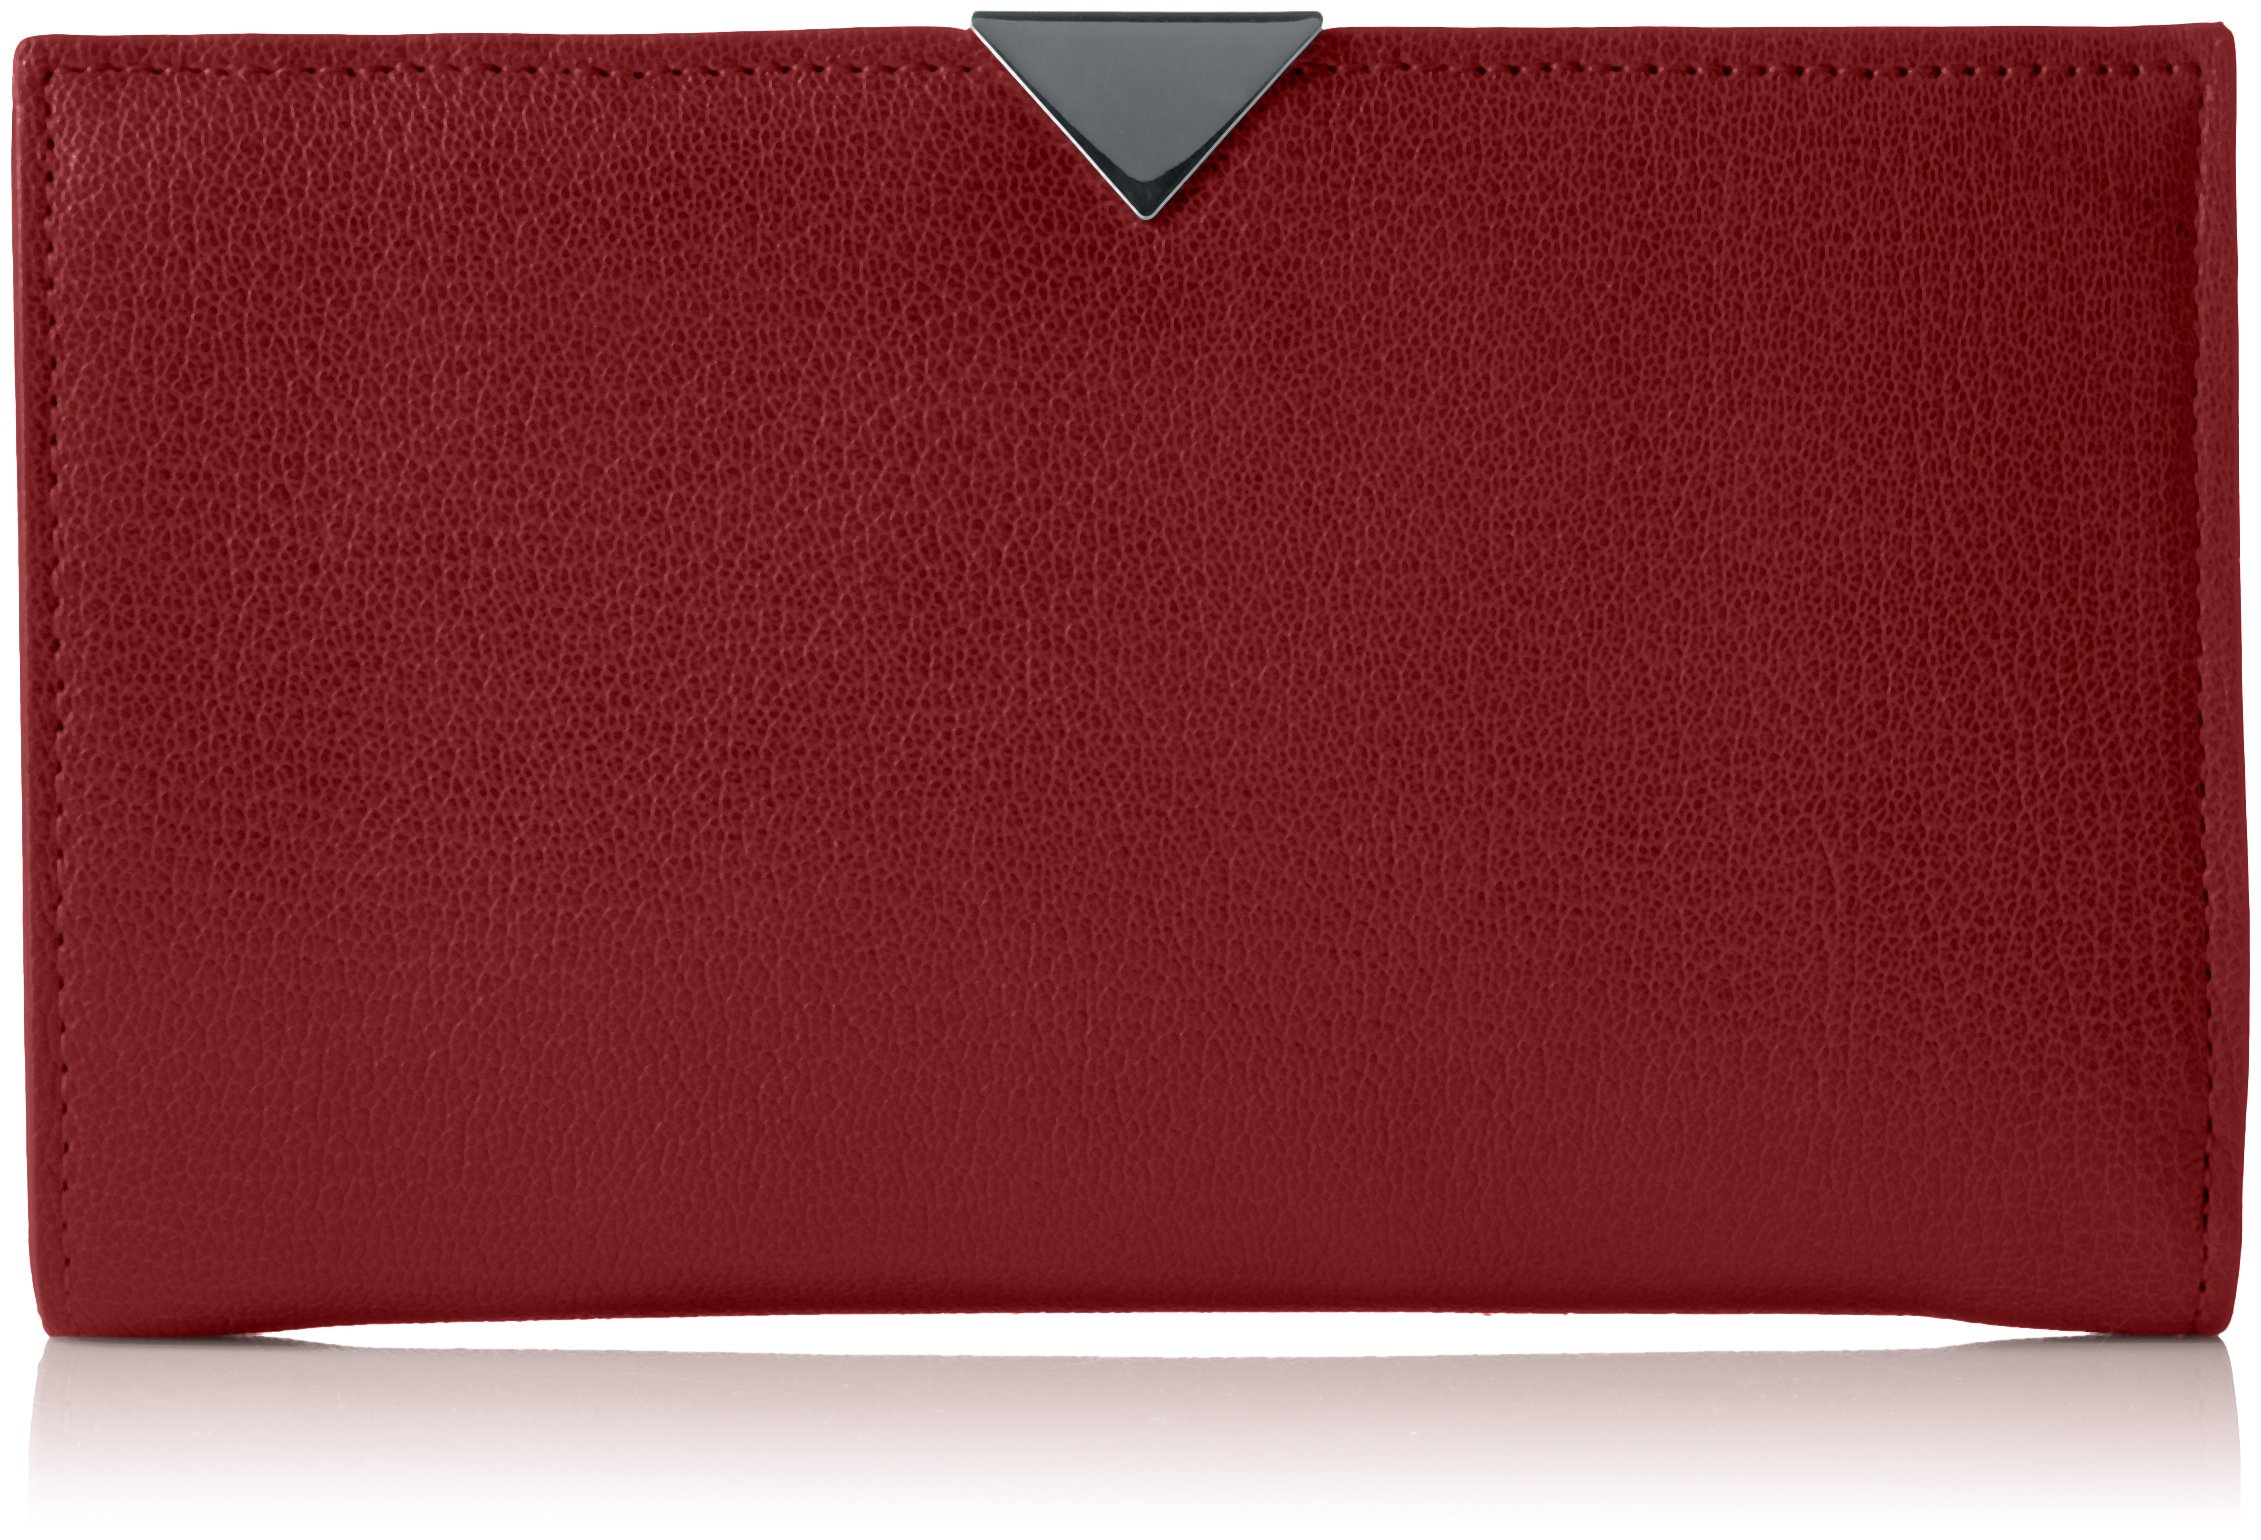 Vince Camuto Zinia Wallet, Lady Bug, One Size by Vince Camuto